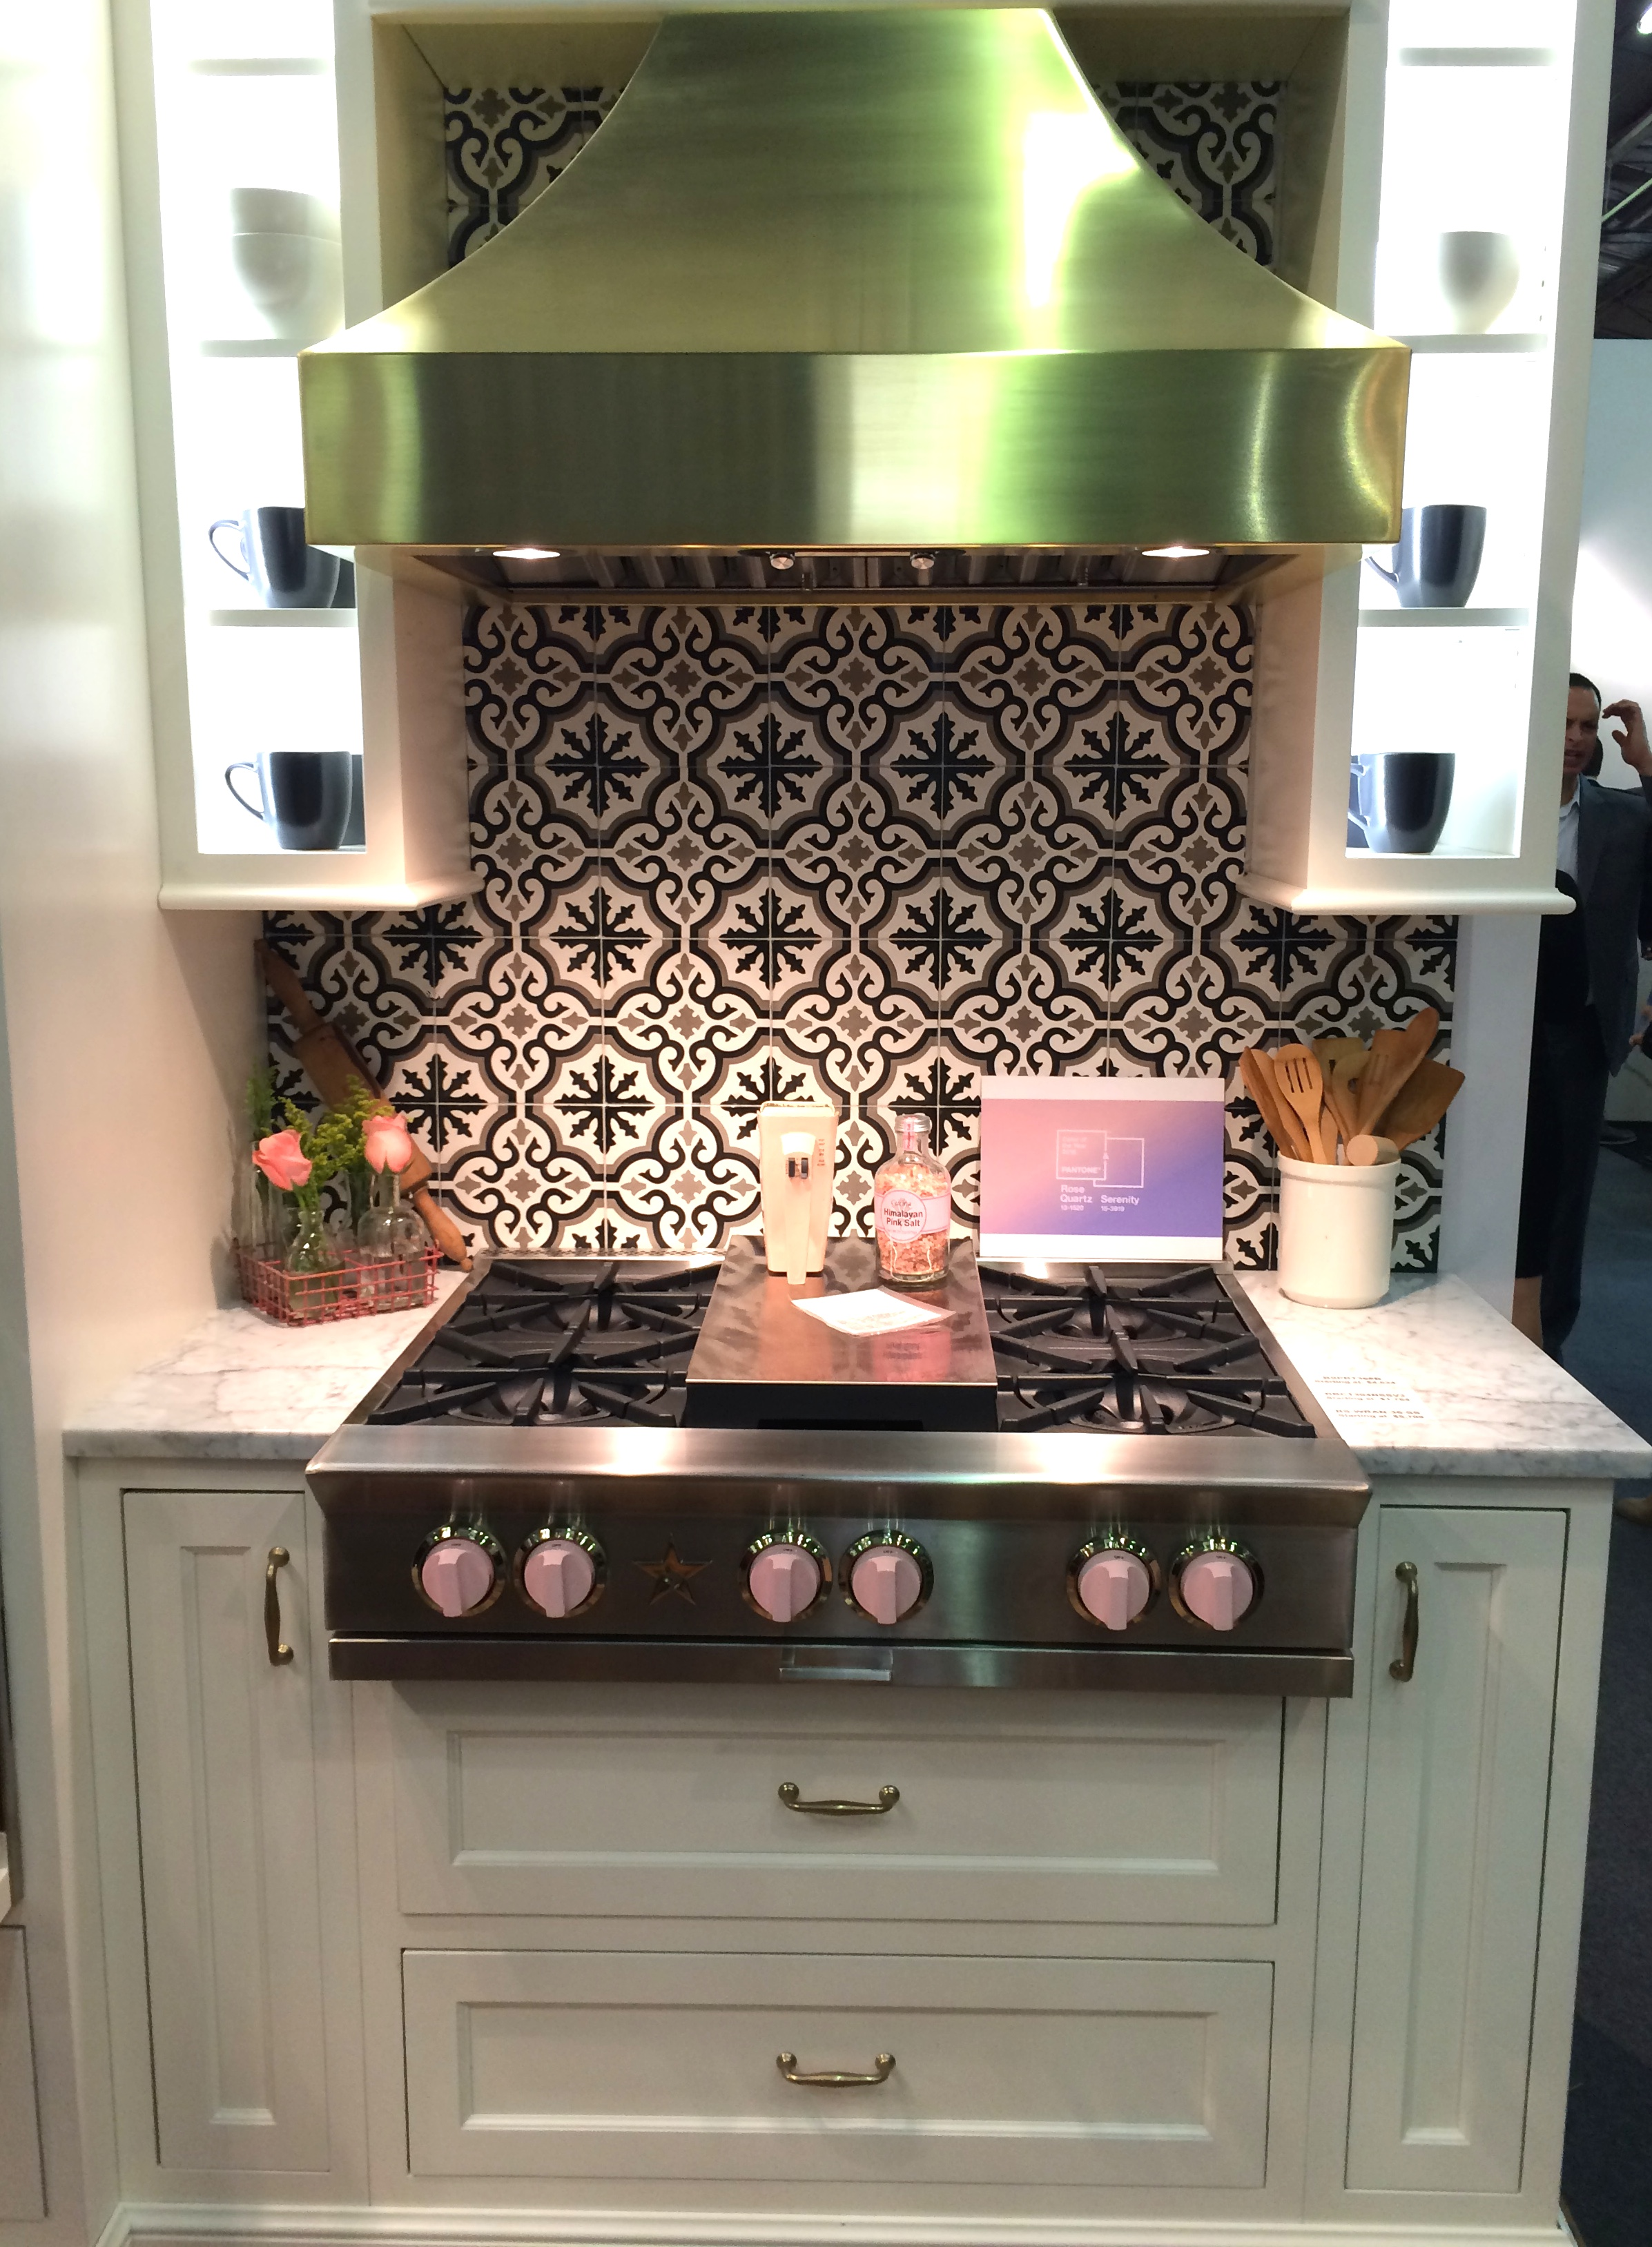 Top trends from the architectural digest show in nyc the for New trends in kitchen appliances